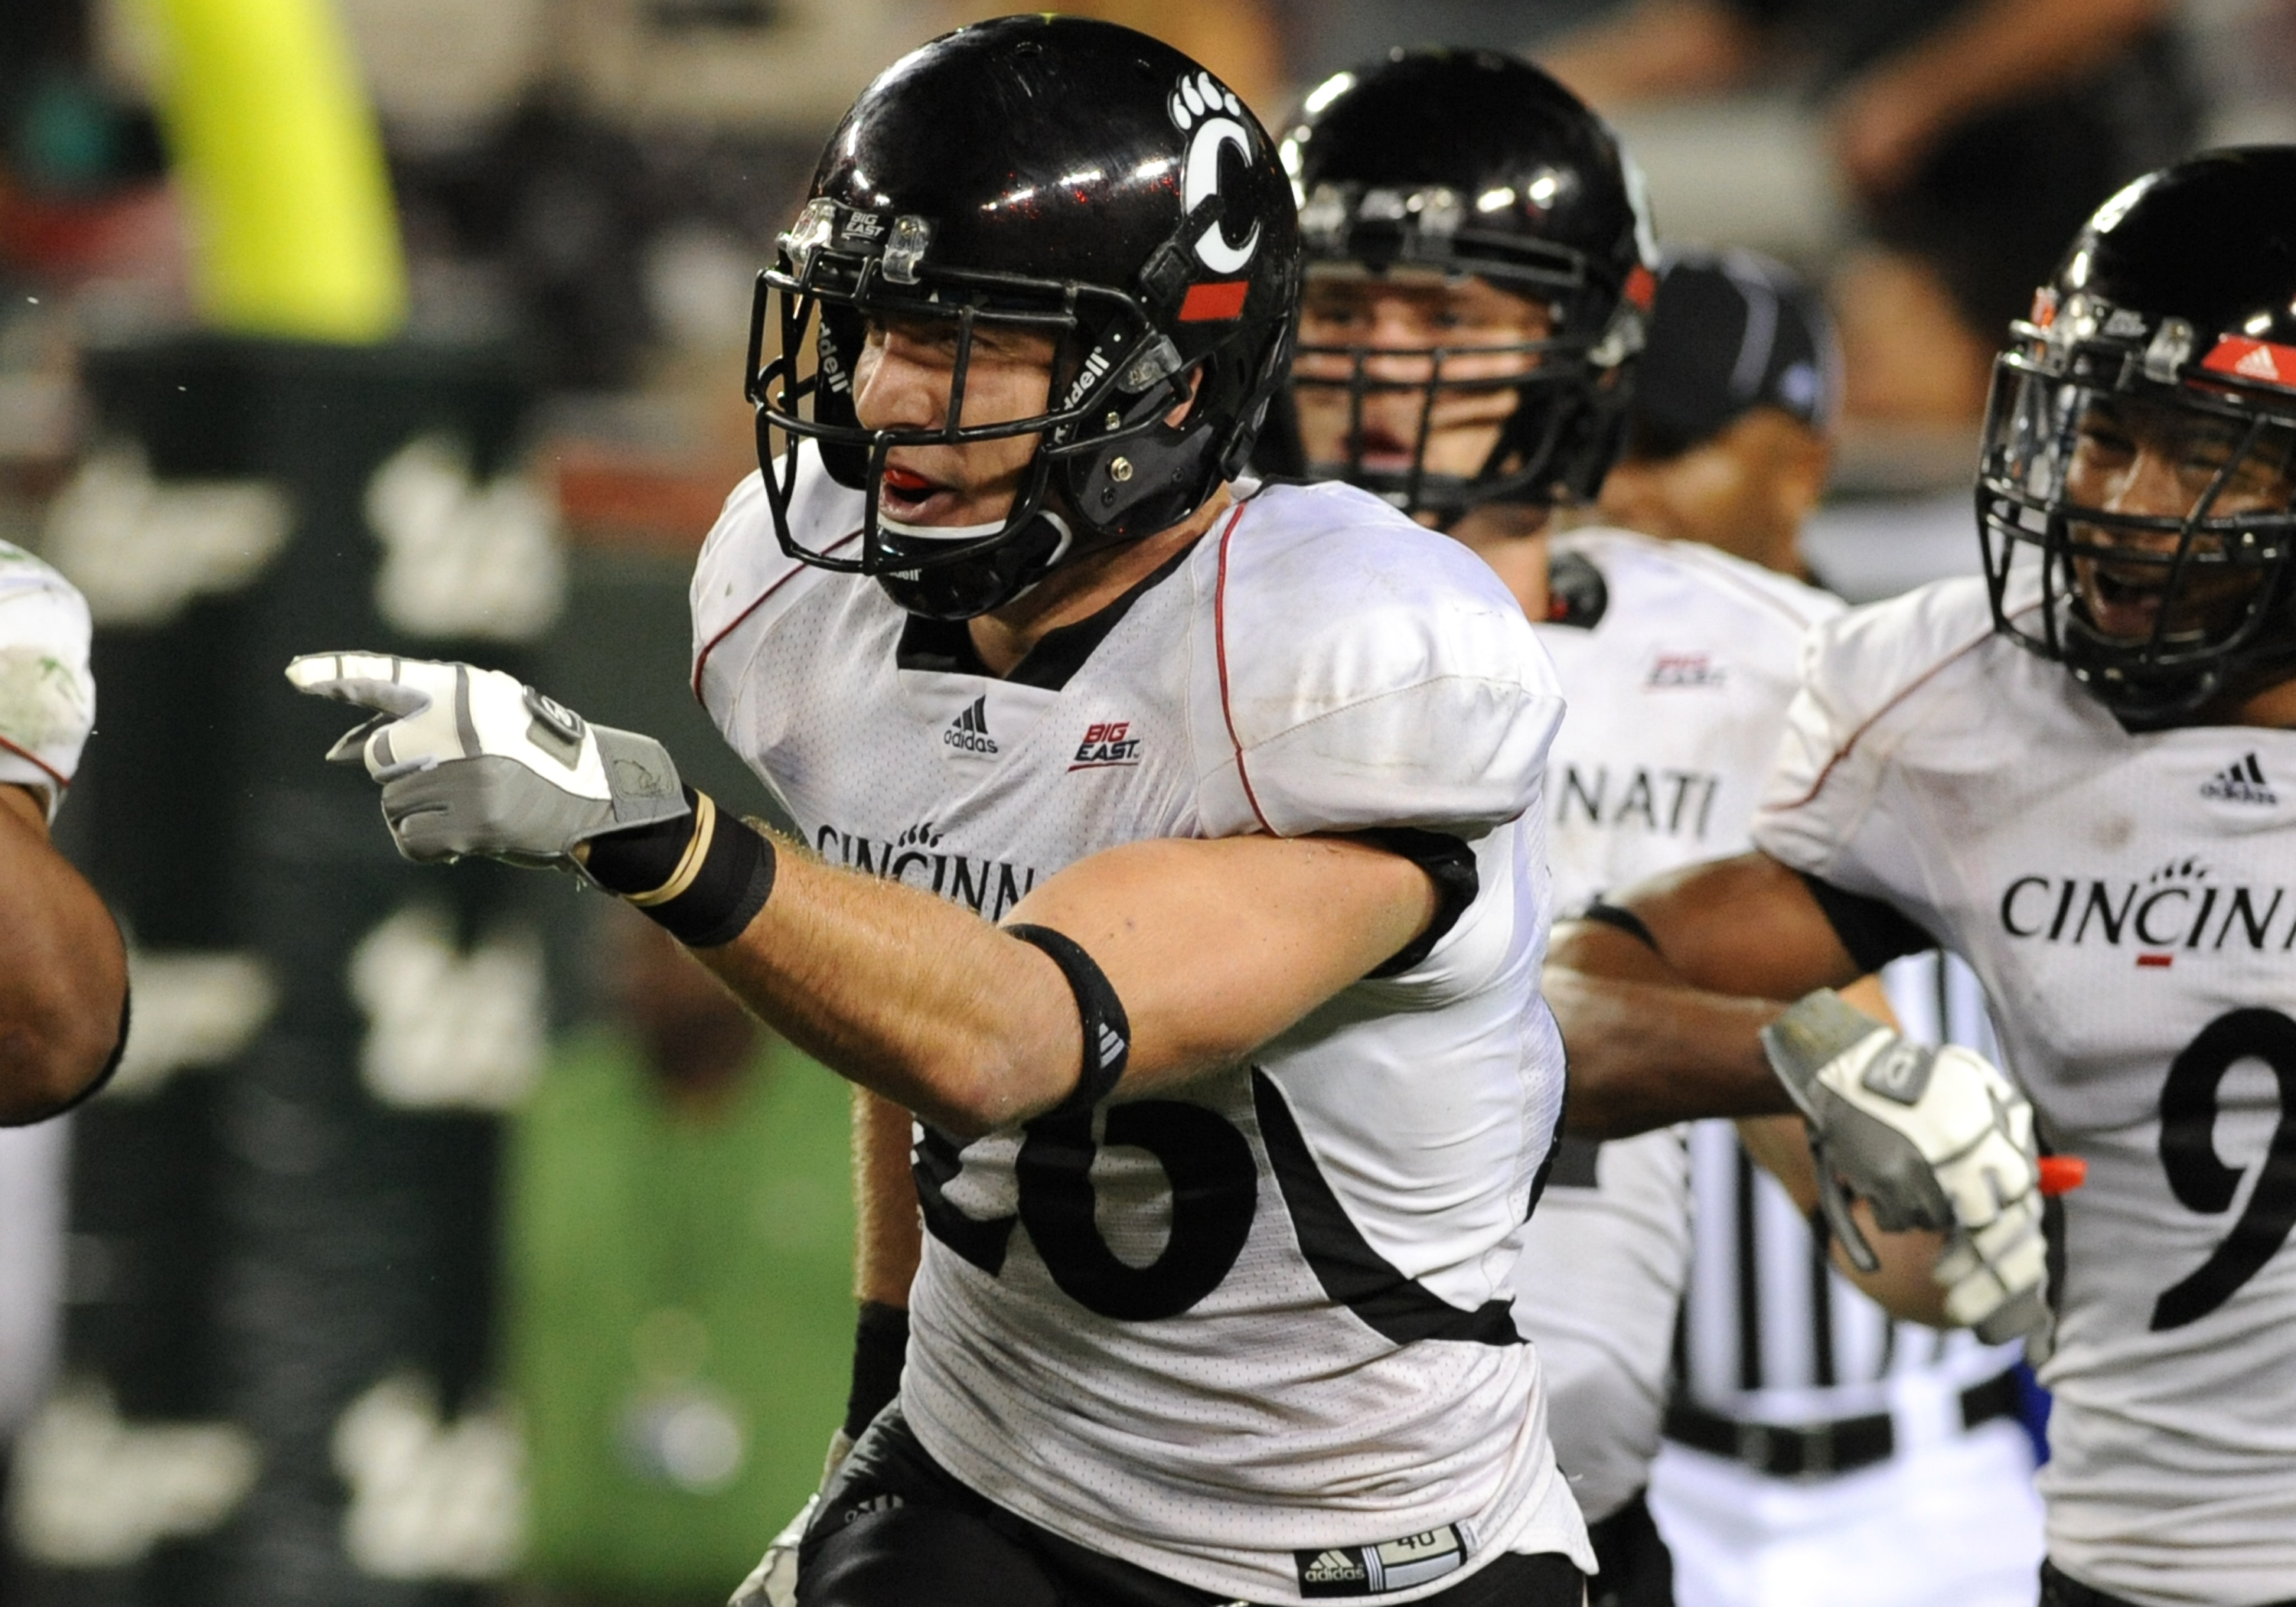 TAMPA, FL - OCTOBER 15:  Safety Drew Frey #26 of the Cincinnati Bearcats celebrates an interception against the University of South Florida Bulls October 15, 2009 at Raymond James Stadium in Tampa, Florida.  (Photo by Al Messerschmidt/Getty Images)